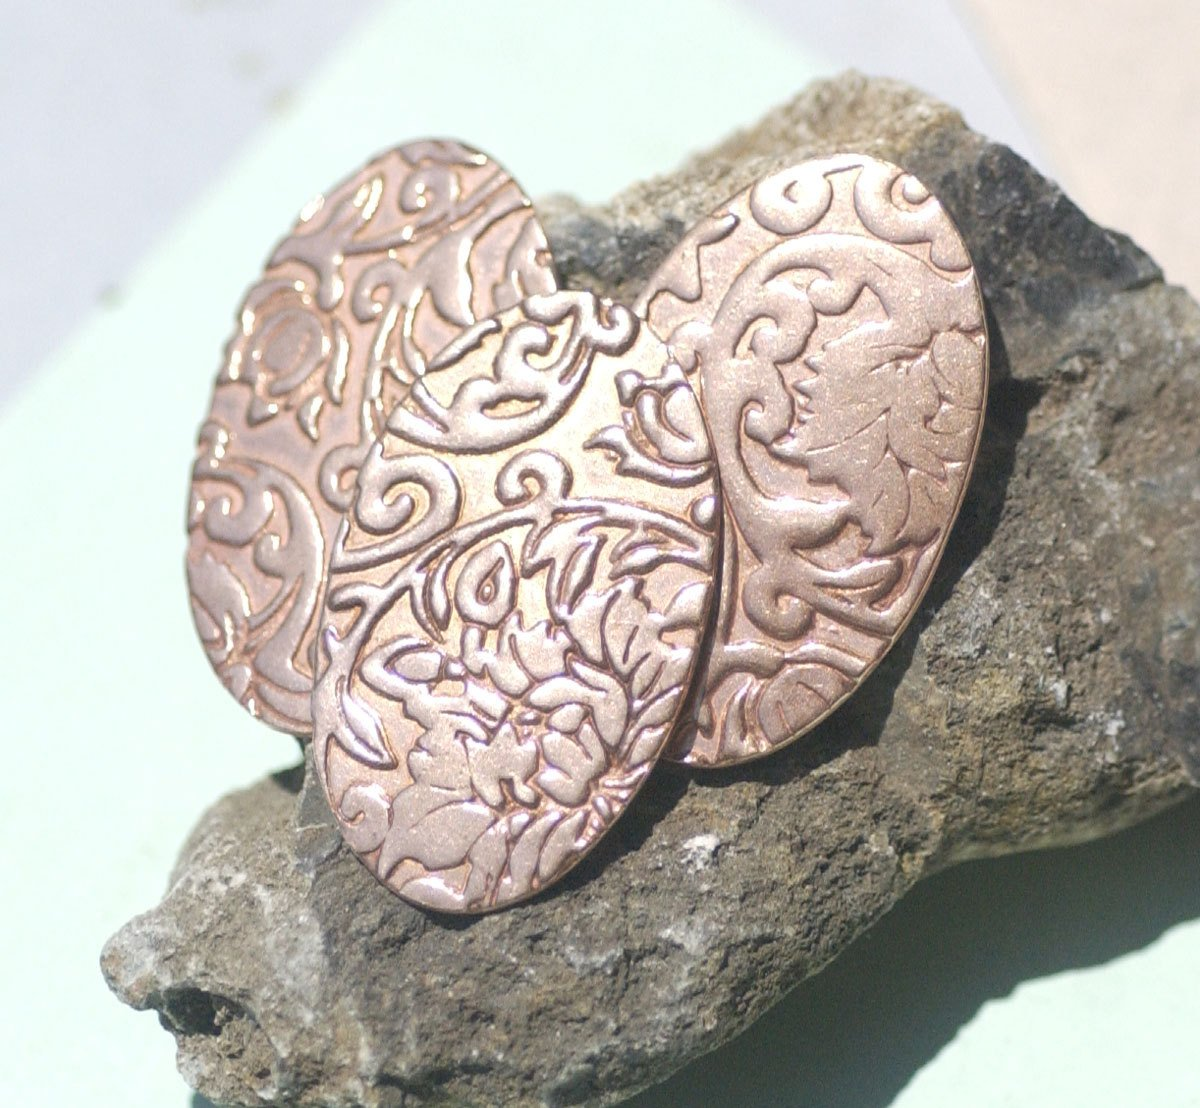 Oval 35mm x 21mm Lotus Flower Pattern Blanks Shape for Enameling Stamping Texturing Variety of Metals - 6 pieces